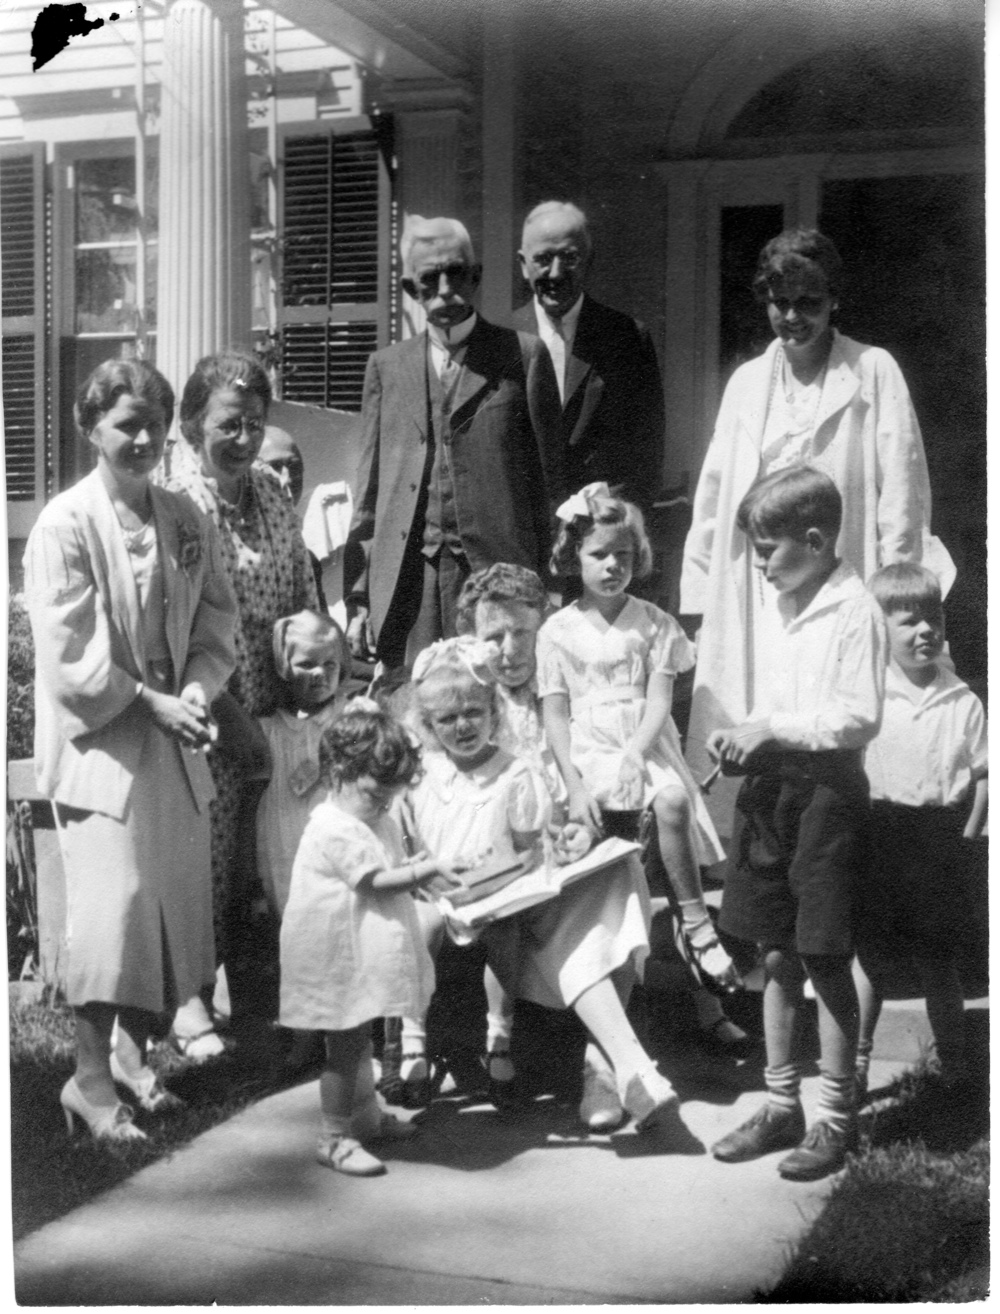 This photograph was taken at The Elms during a visit by both Furnas daughters-in- law and their children, probably in the summer of 1934